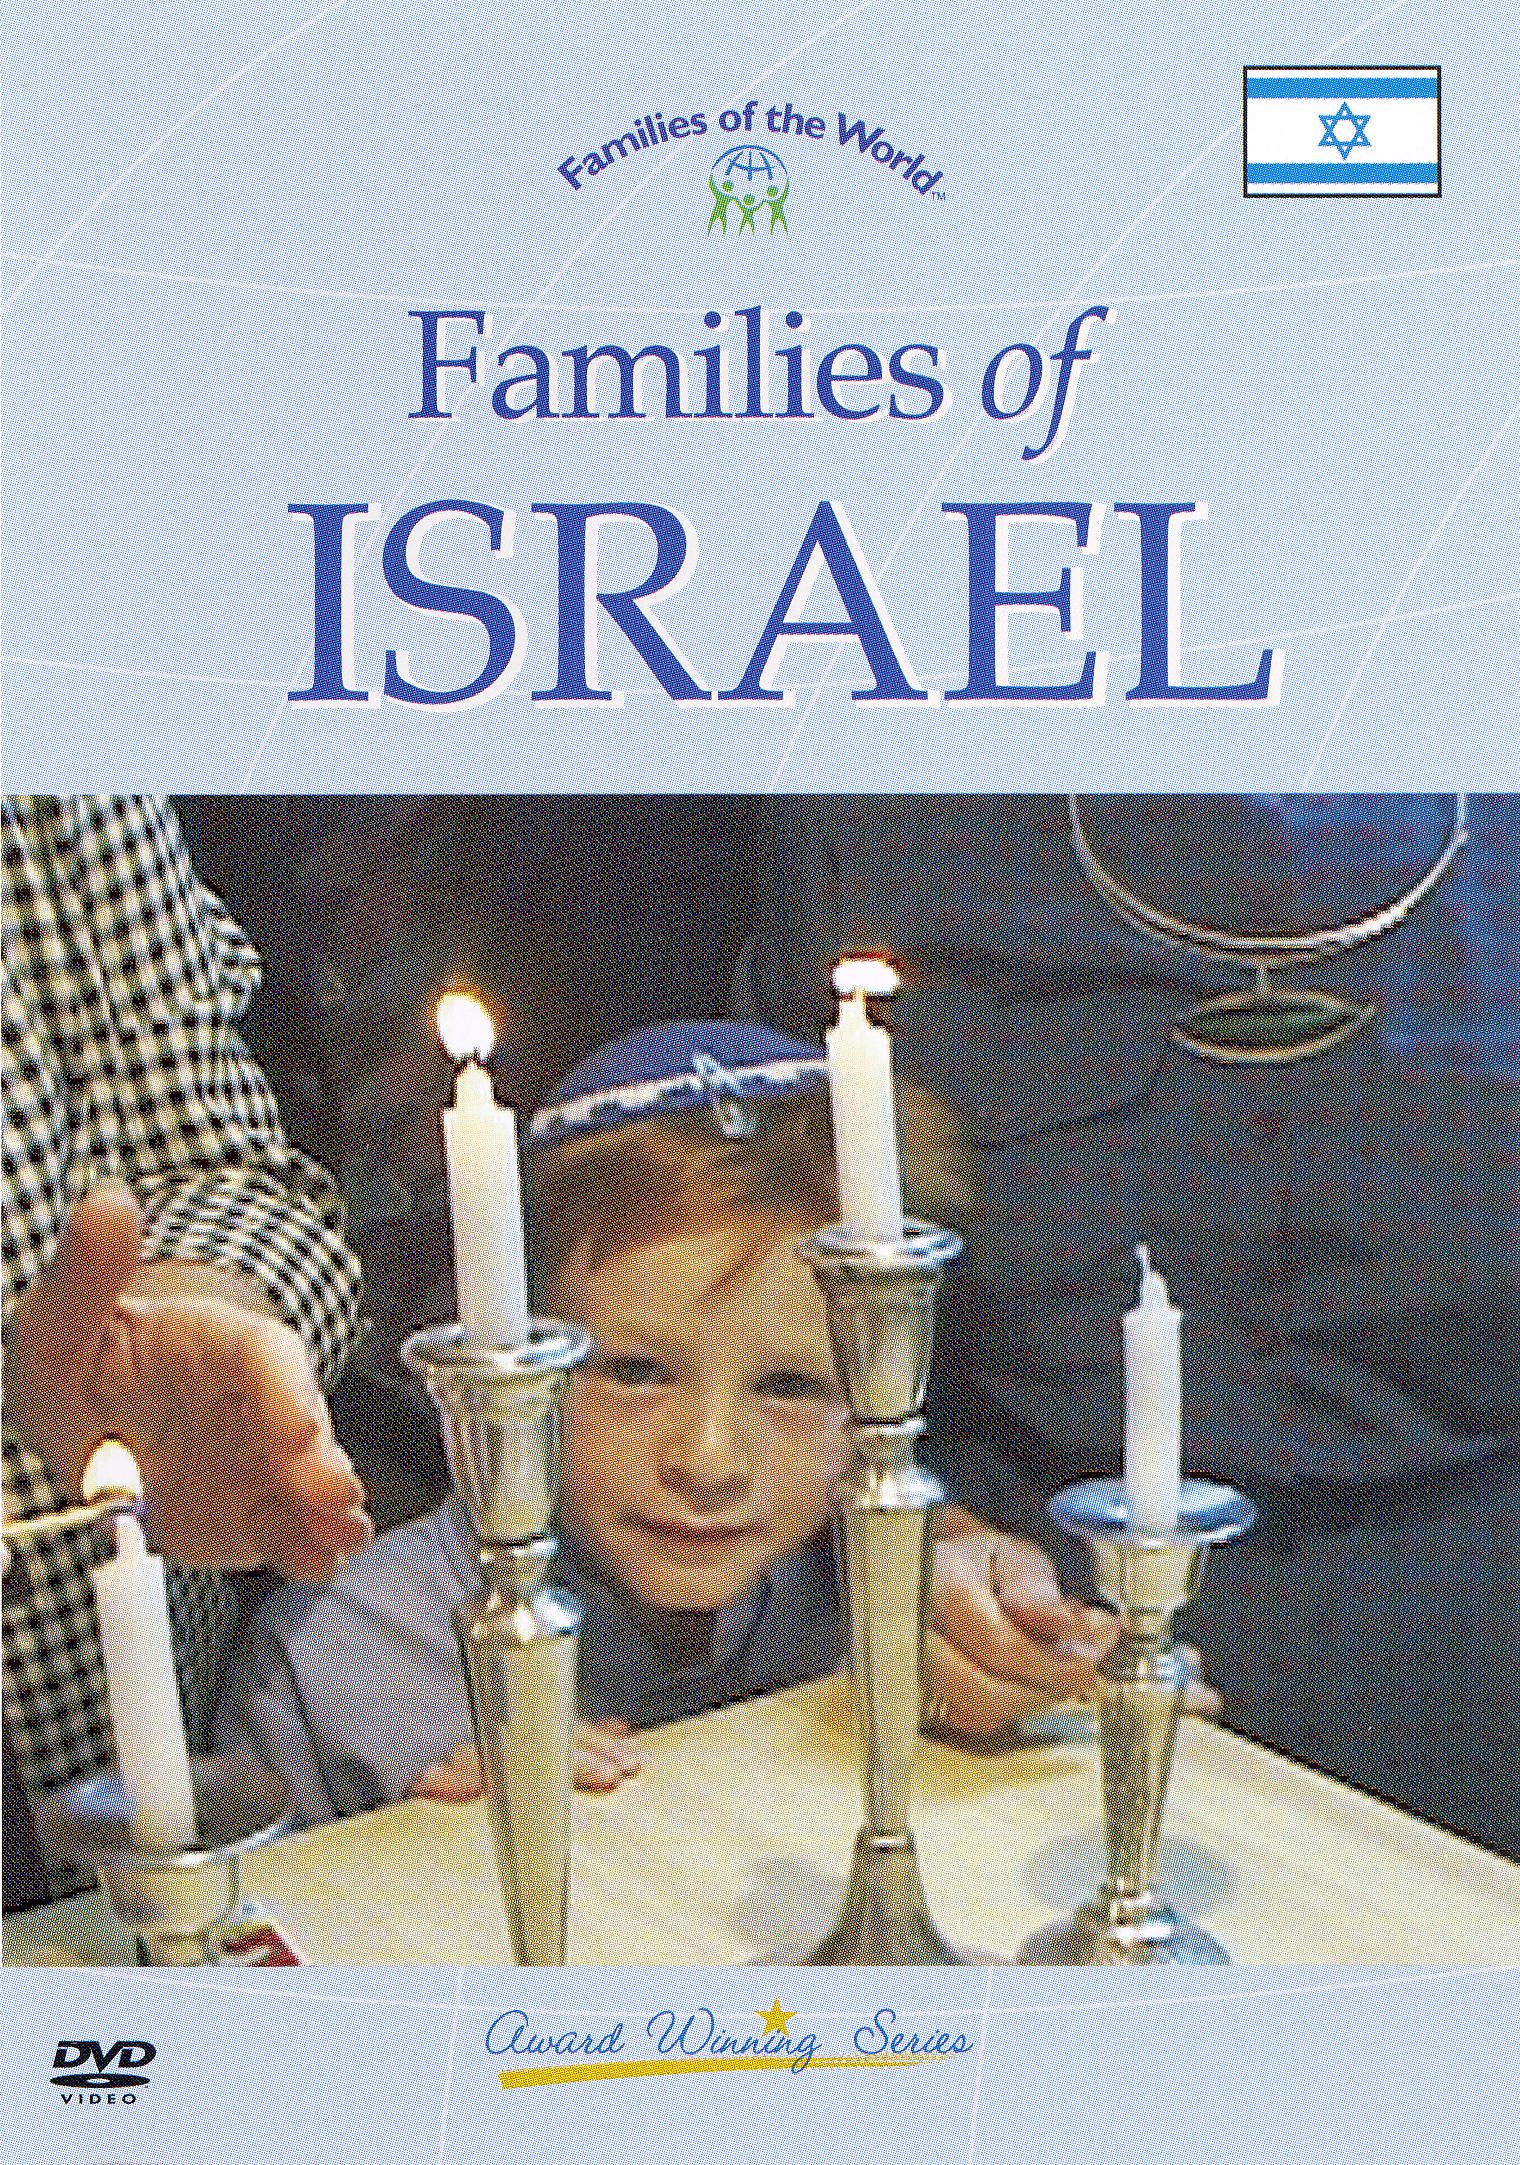 Families of the World: Families of Israel (2000)